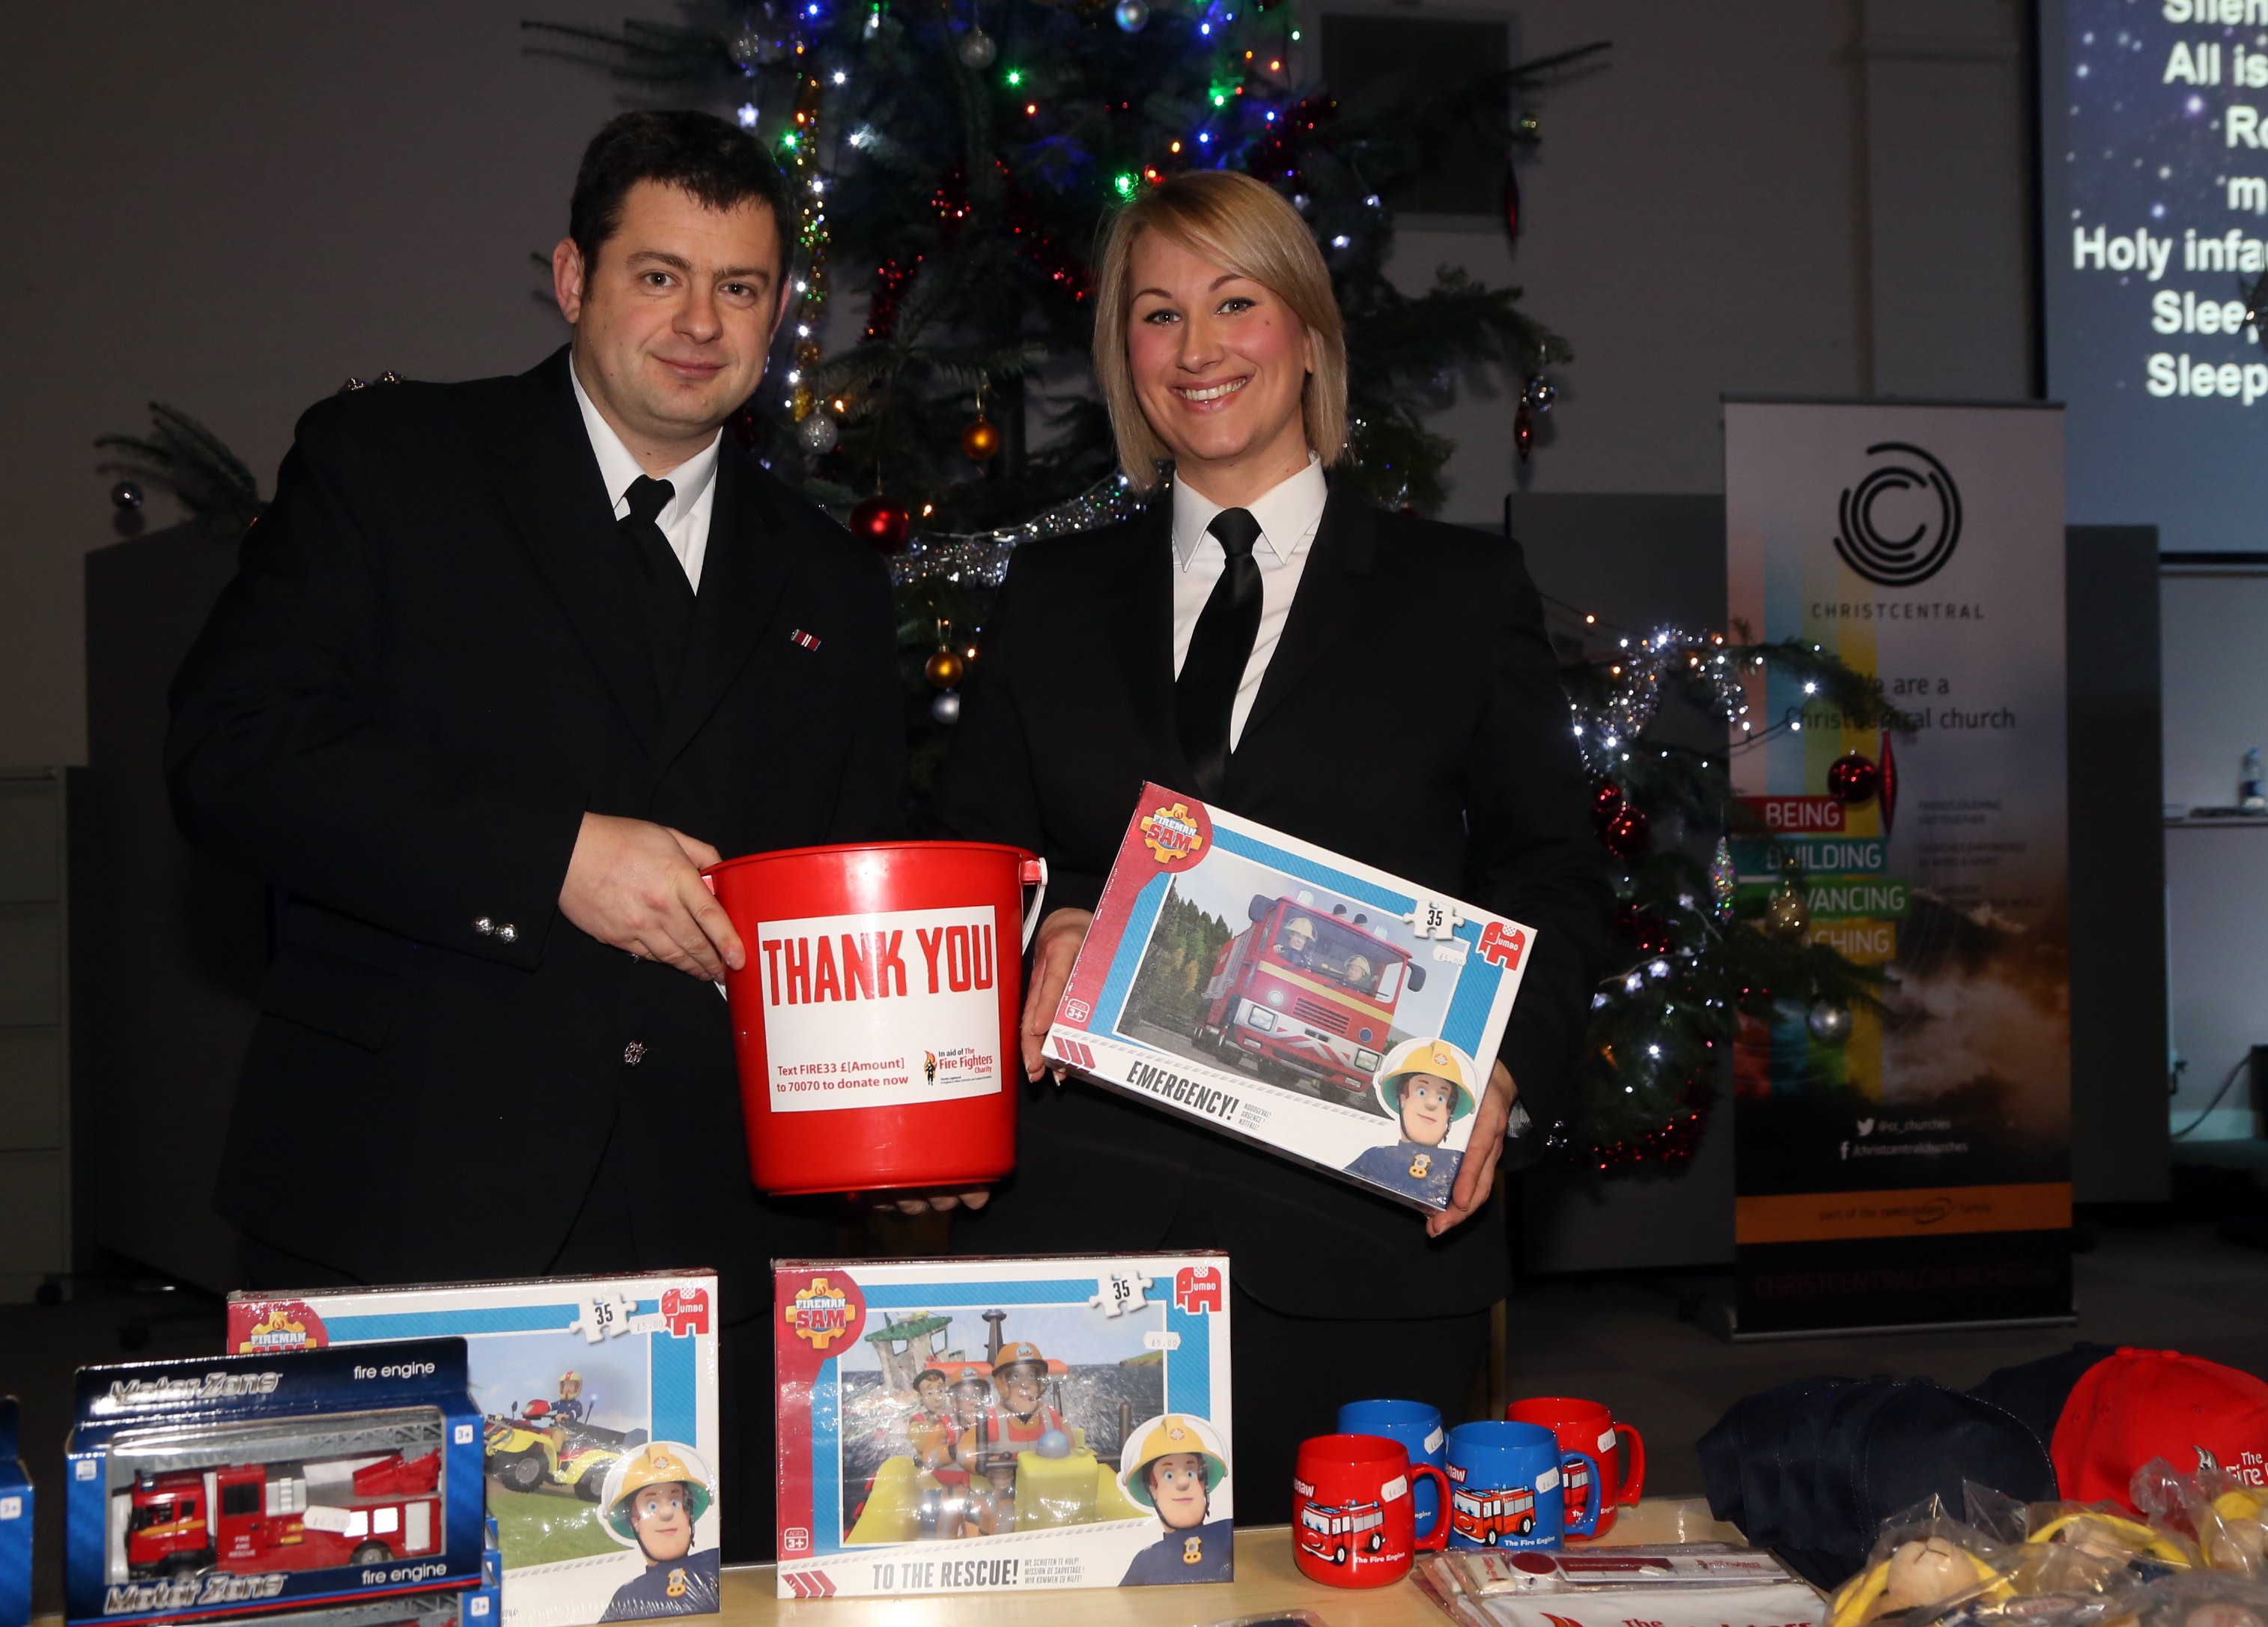 Funds were raised for the Firefighters Charity